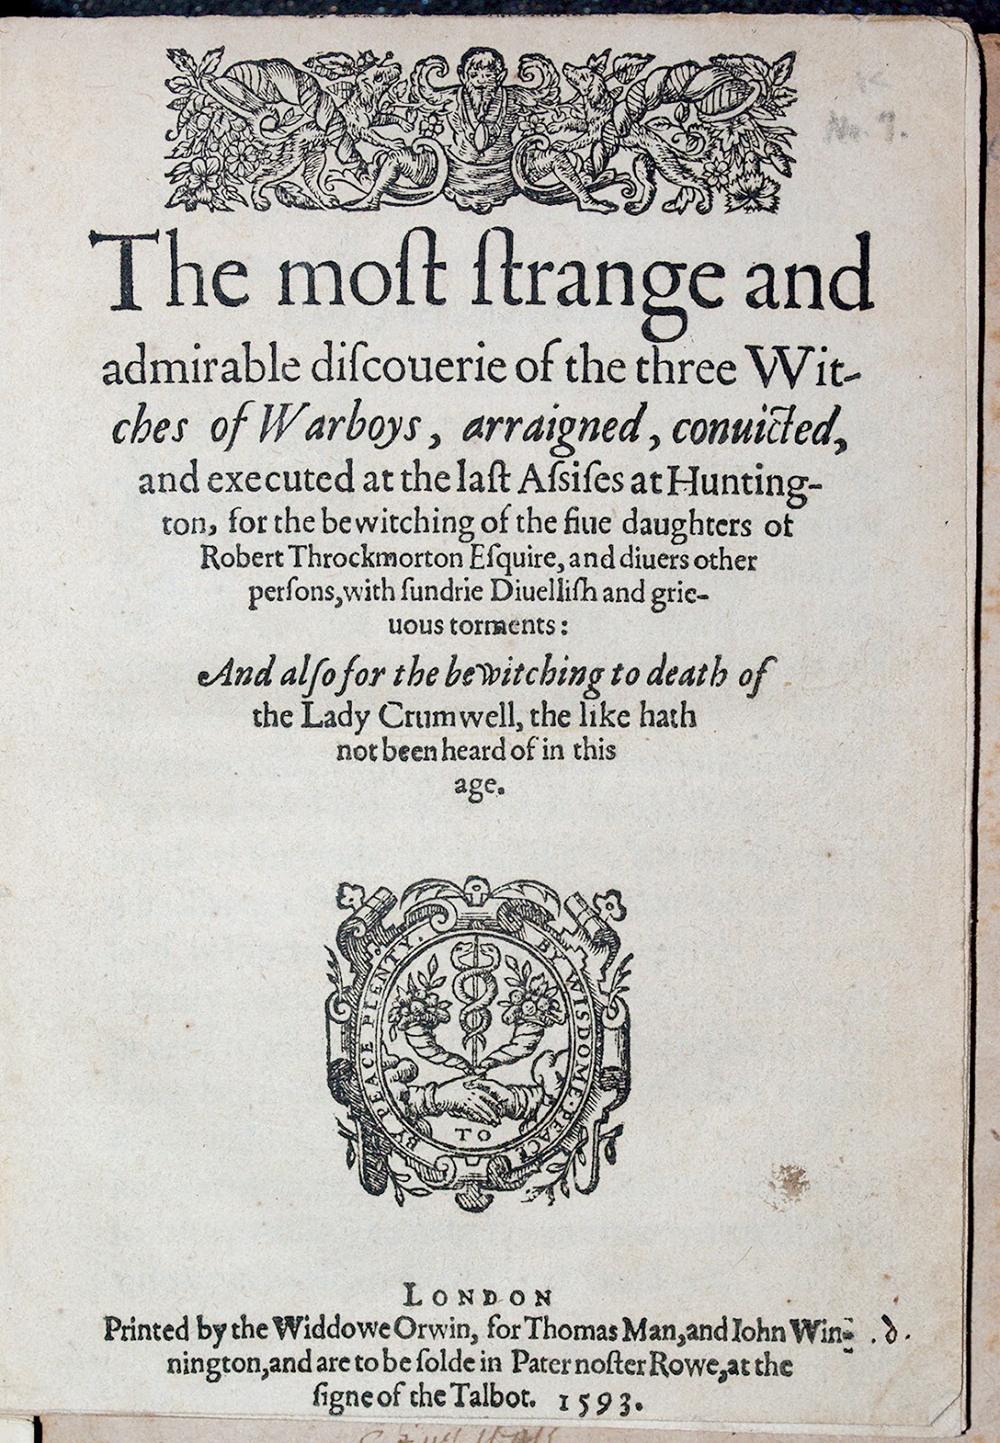 Pamphlet on the Throckmorton witch incidents, 1593.